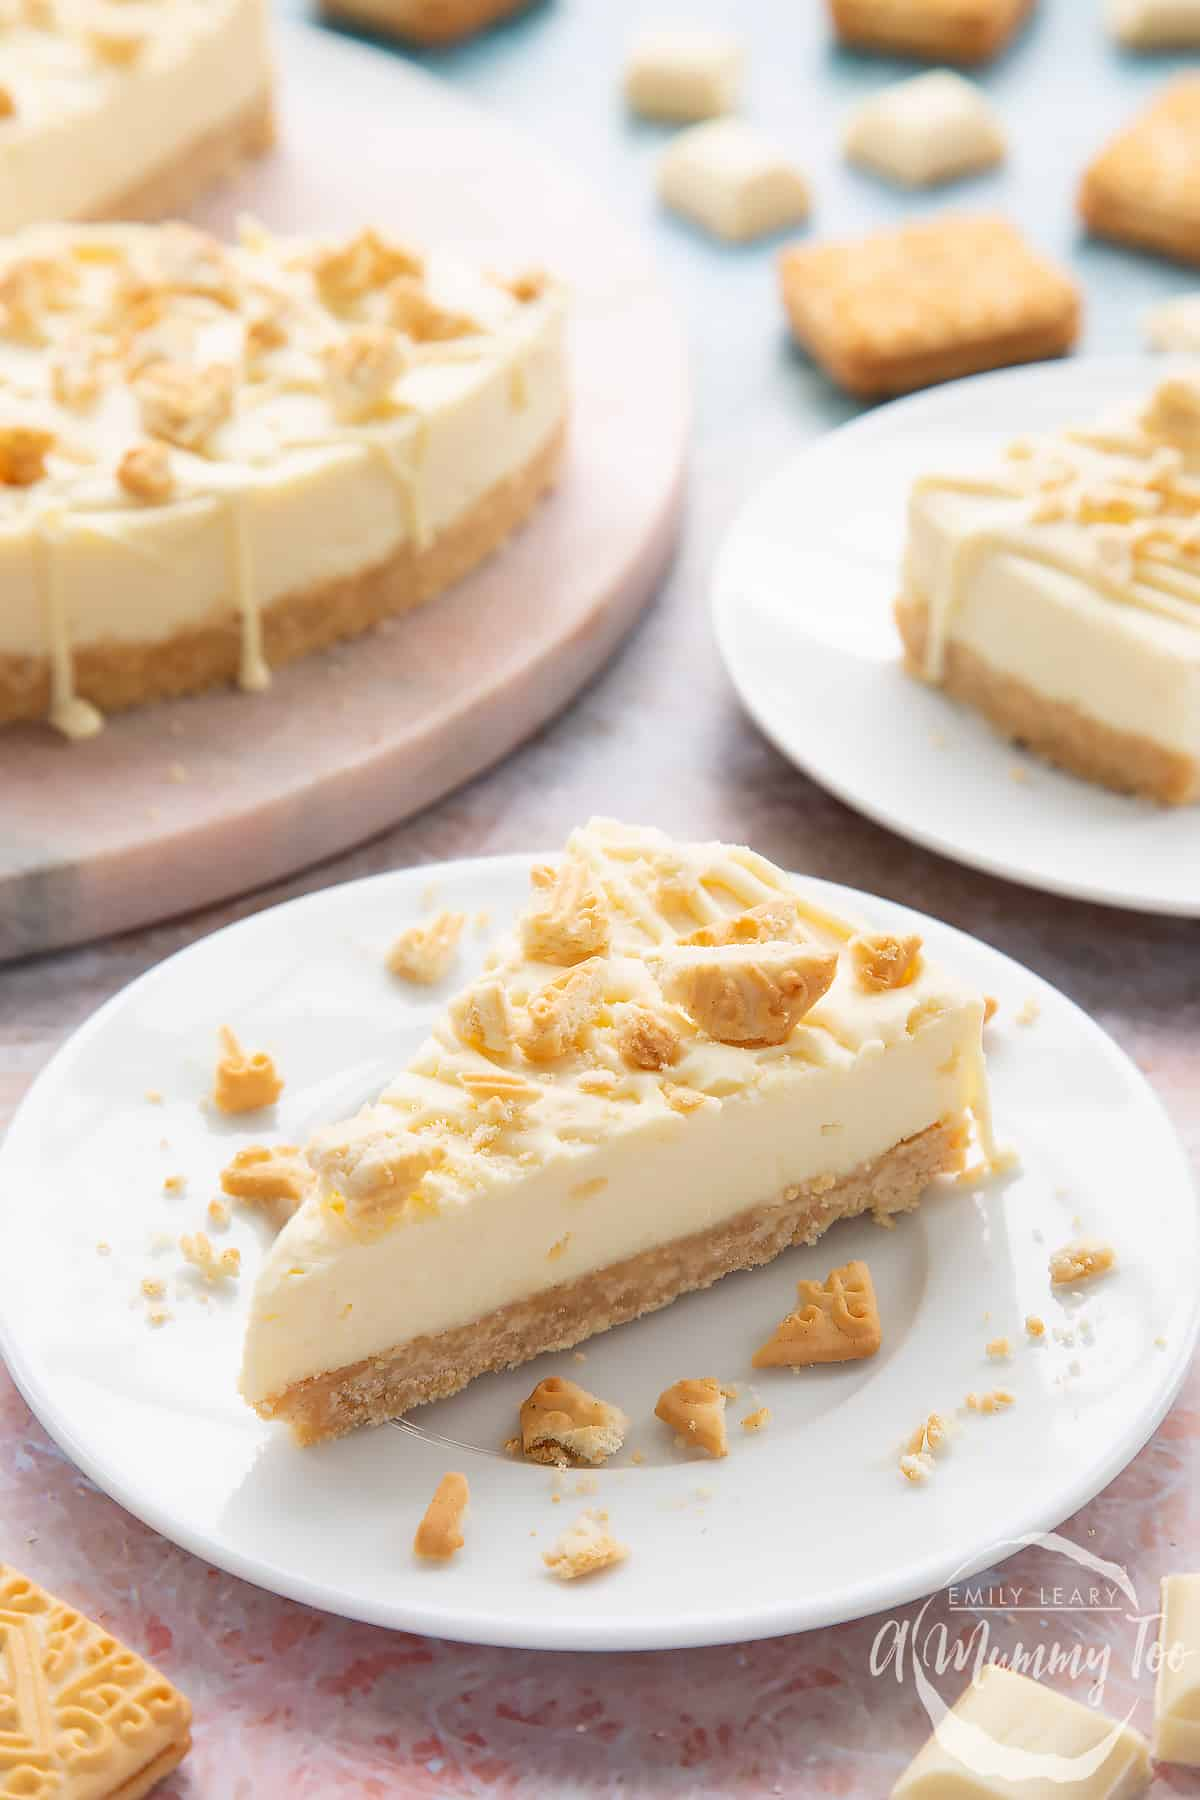 Front view shot of a piece of white chocolate cheesecake toppedw ith custard cream biscuit crumbs on a white plate